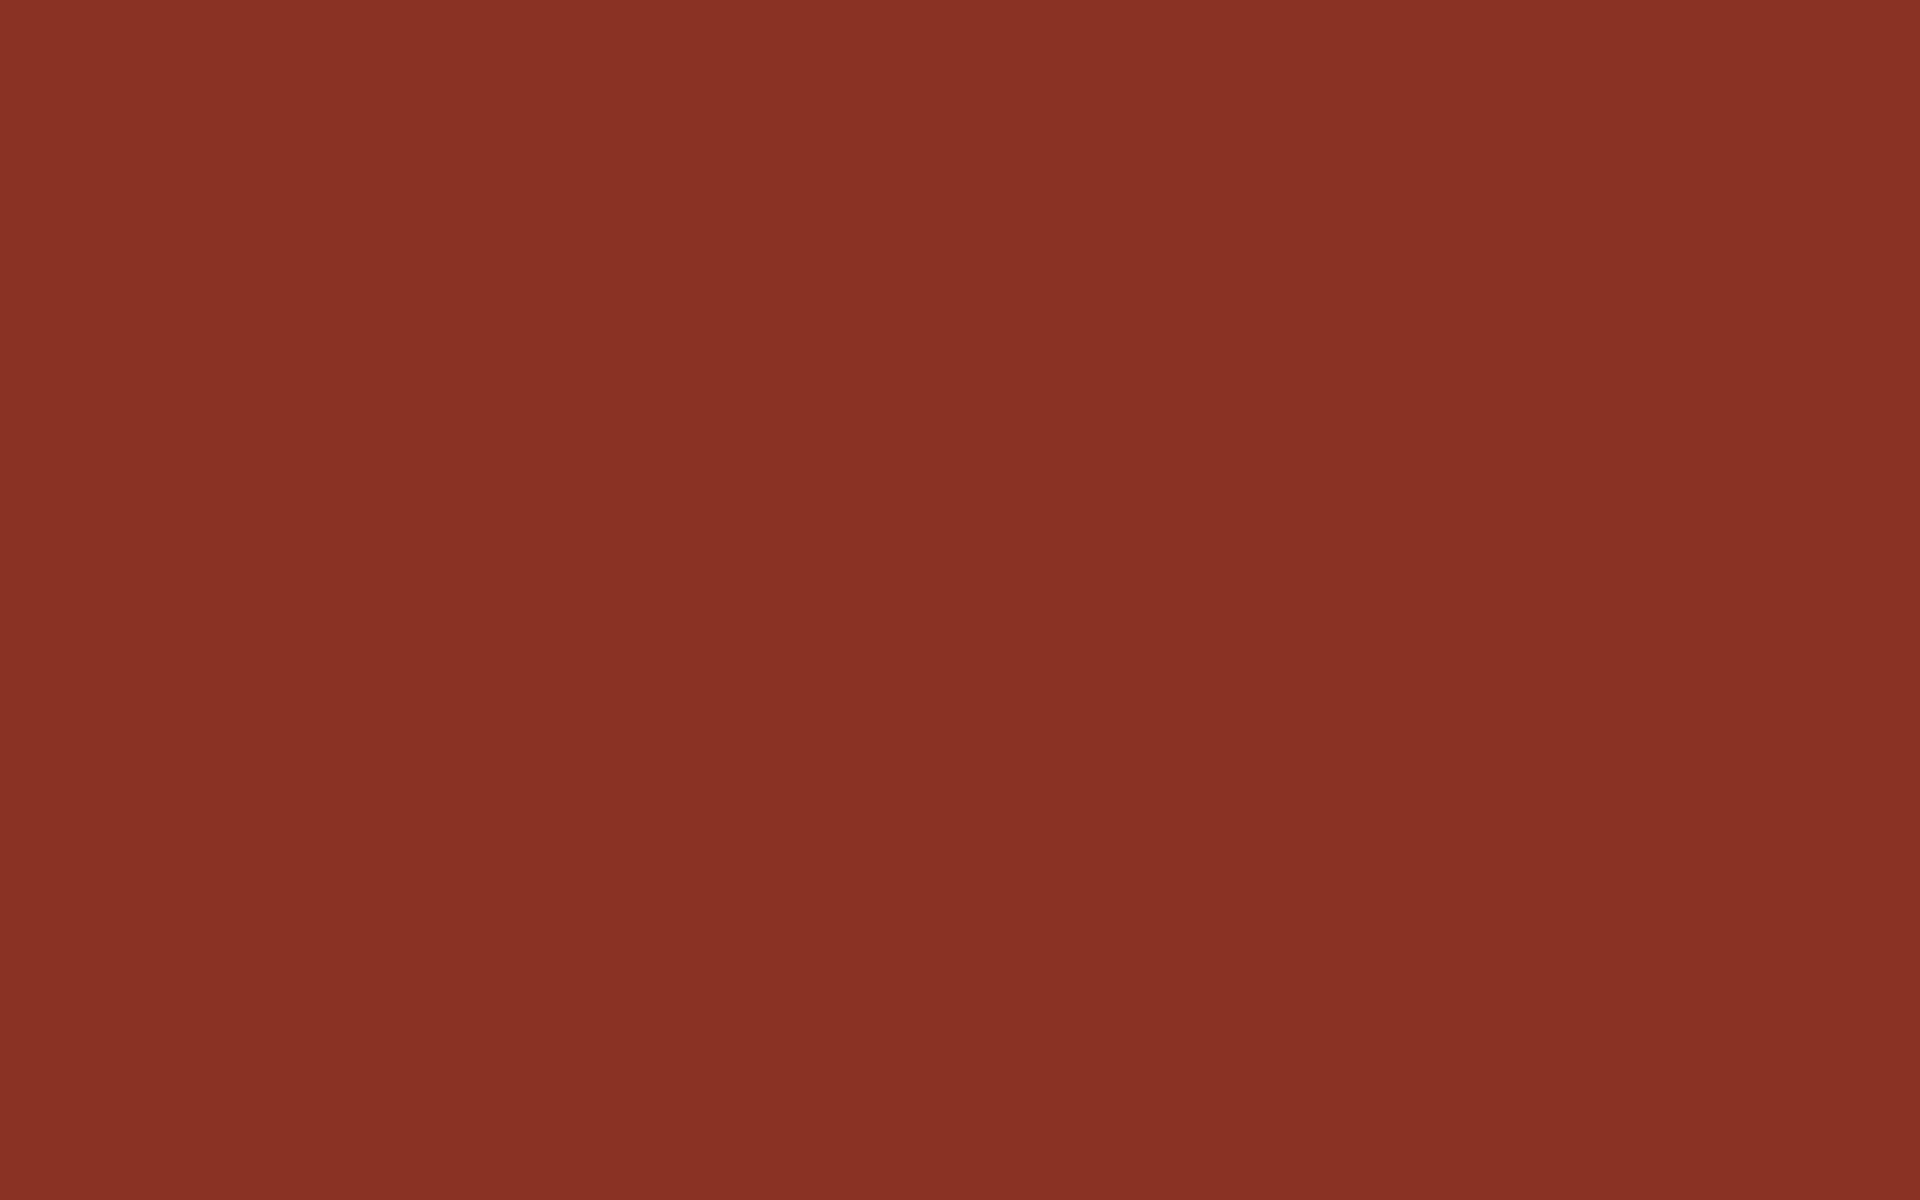 1920x1200 Burnt Umber Solid Color Background